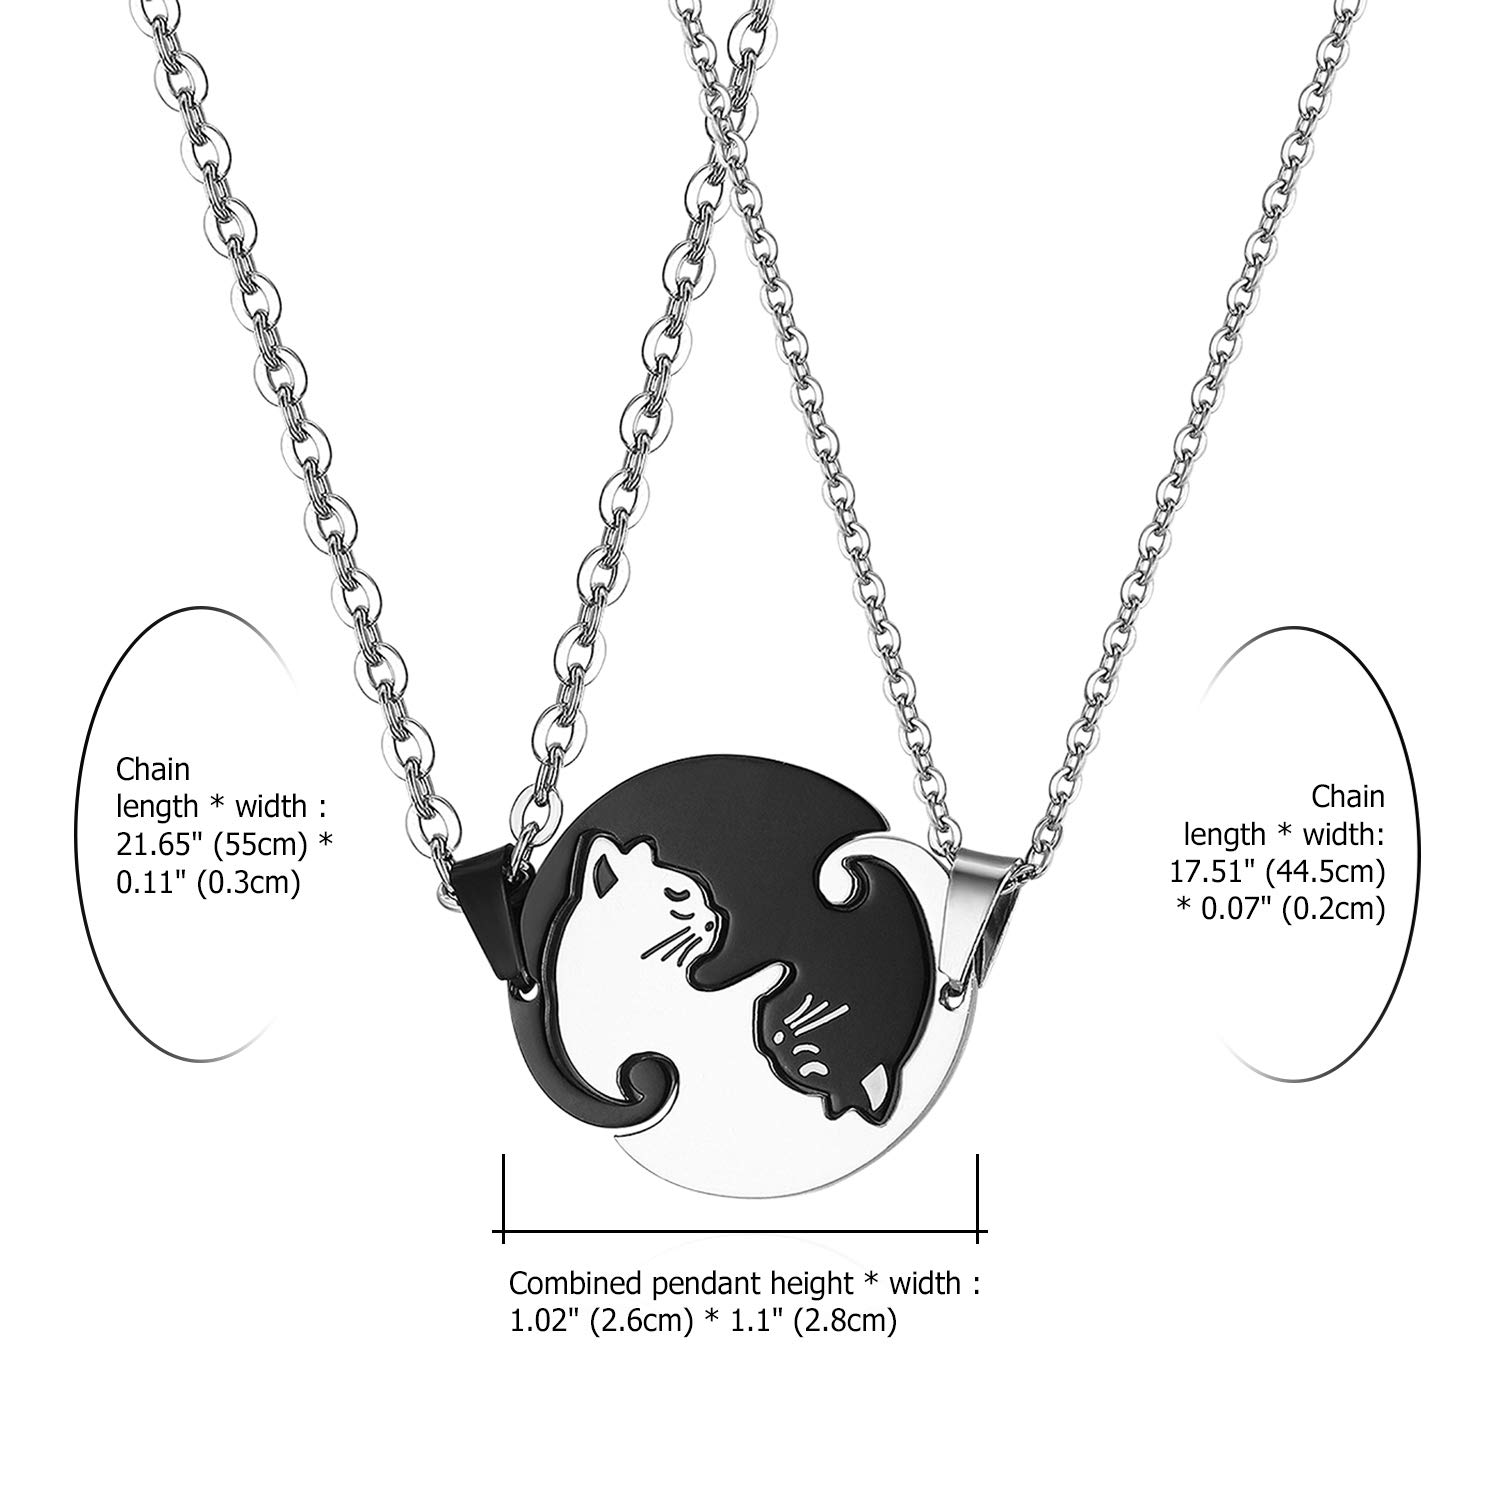 bd3da5196a Amazon.com: Stainless Steel His Hers Yin Yang Pet Cat Puzzle Pendant  Necklace for Couples Valentines Day Gifts,with Gift Bag: Clothing